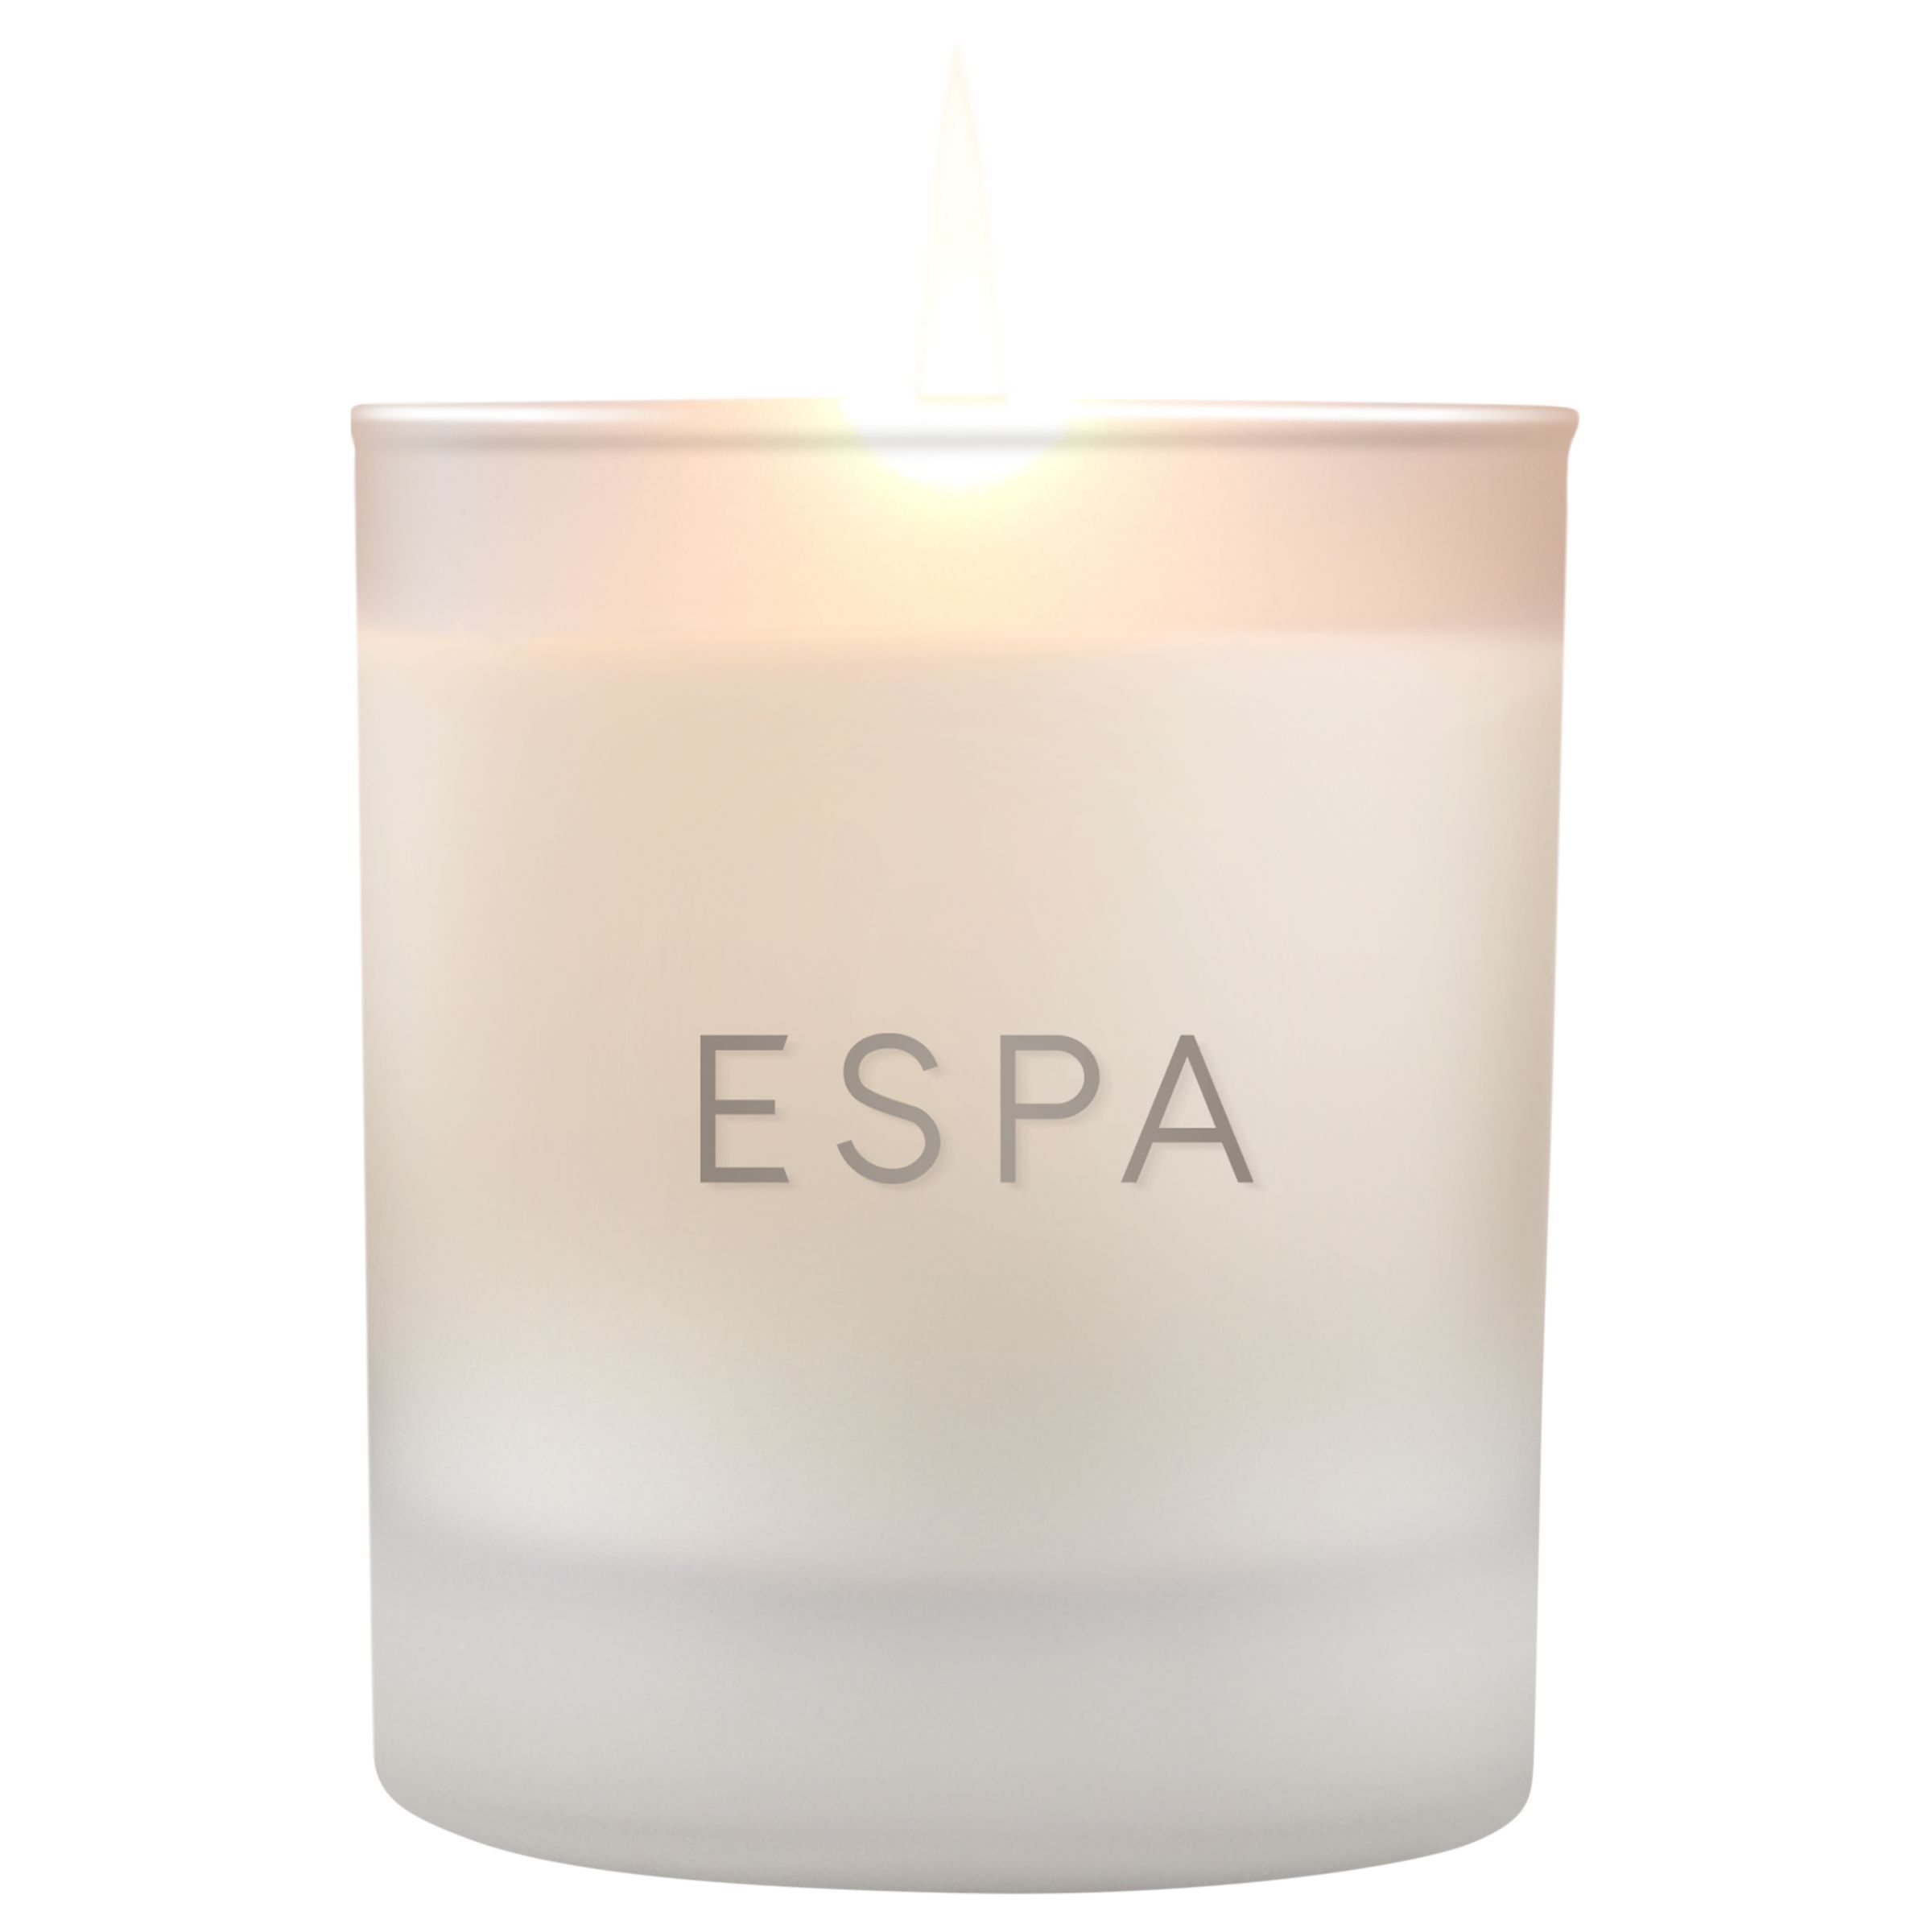 ESPA ESPA Soothing Aromatic Scented Candle, 200g